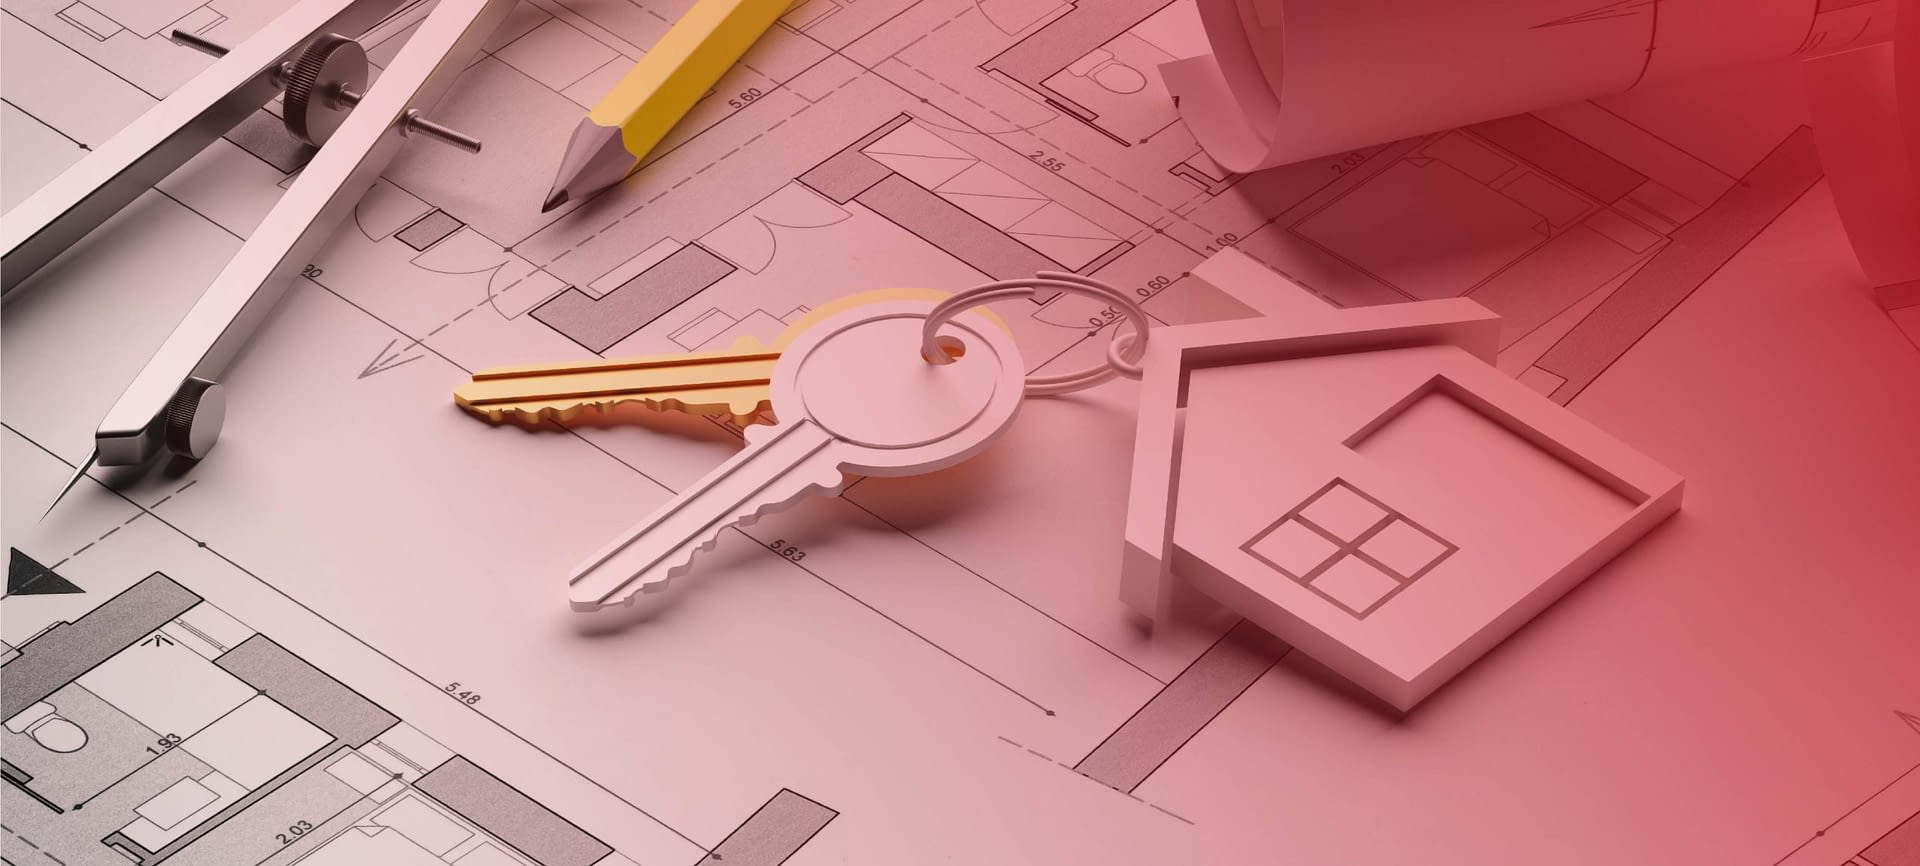 ADVICE ON SELLING YOUR HOUSE